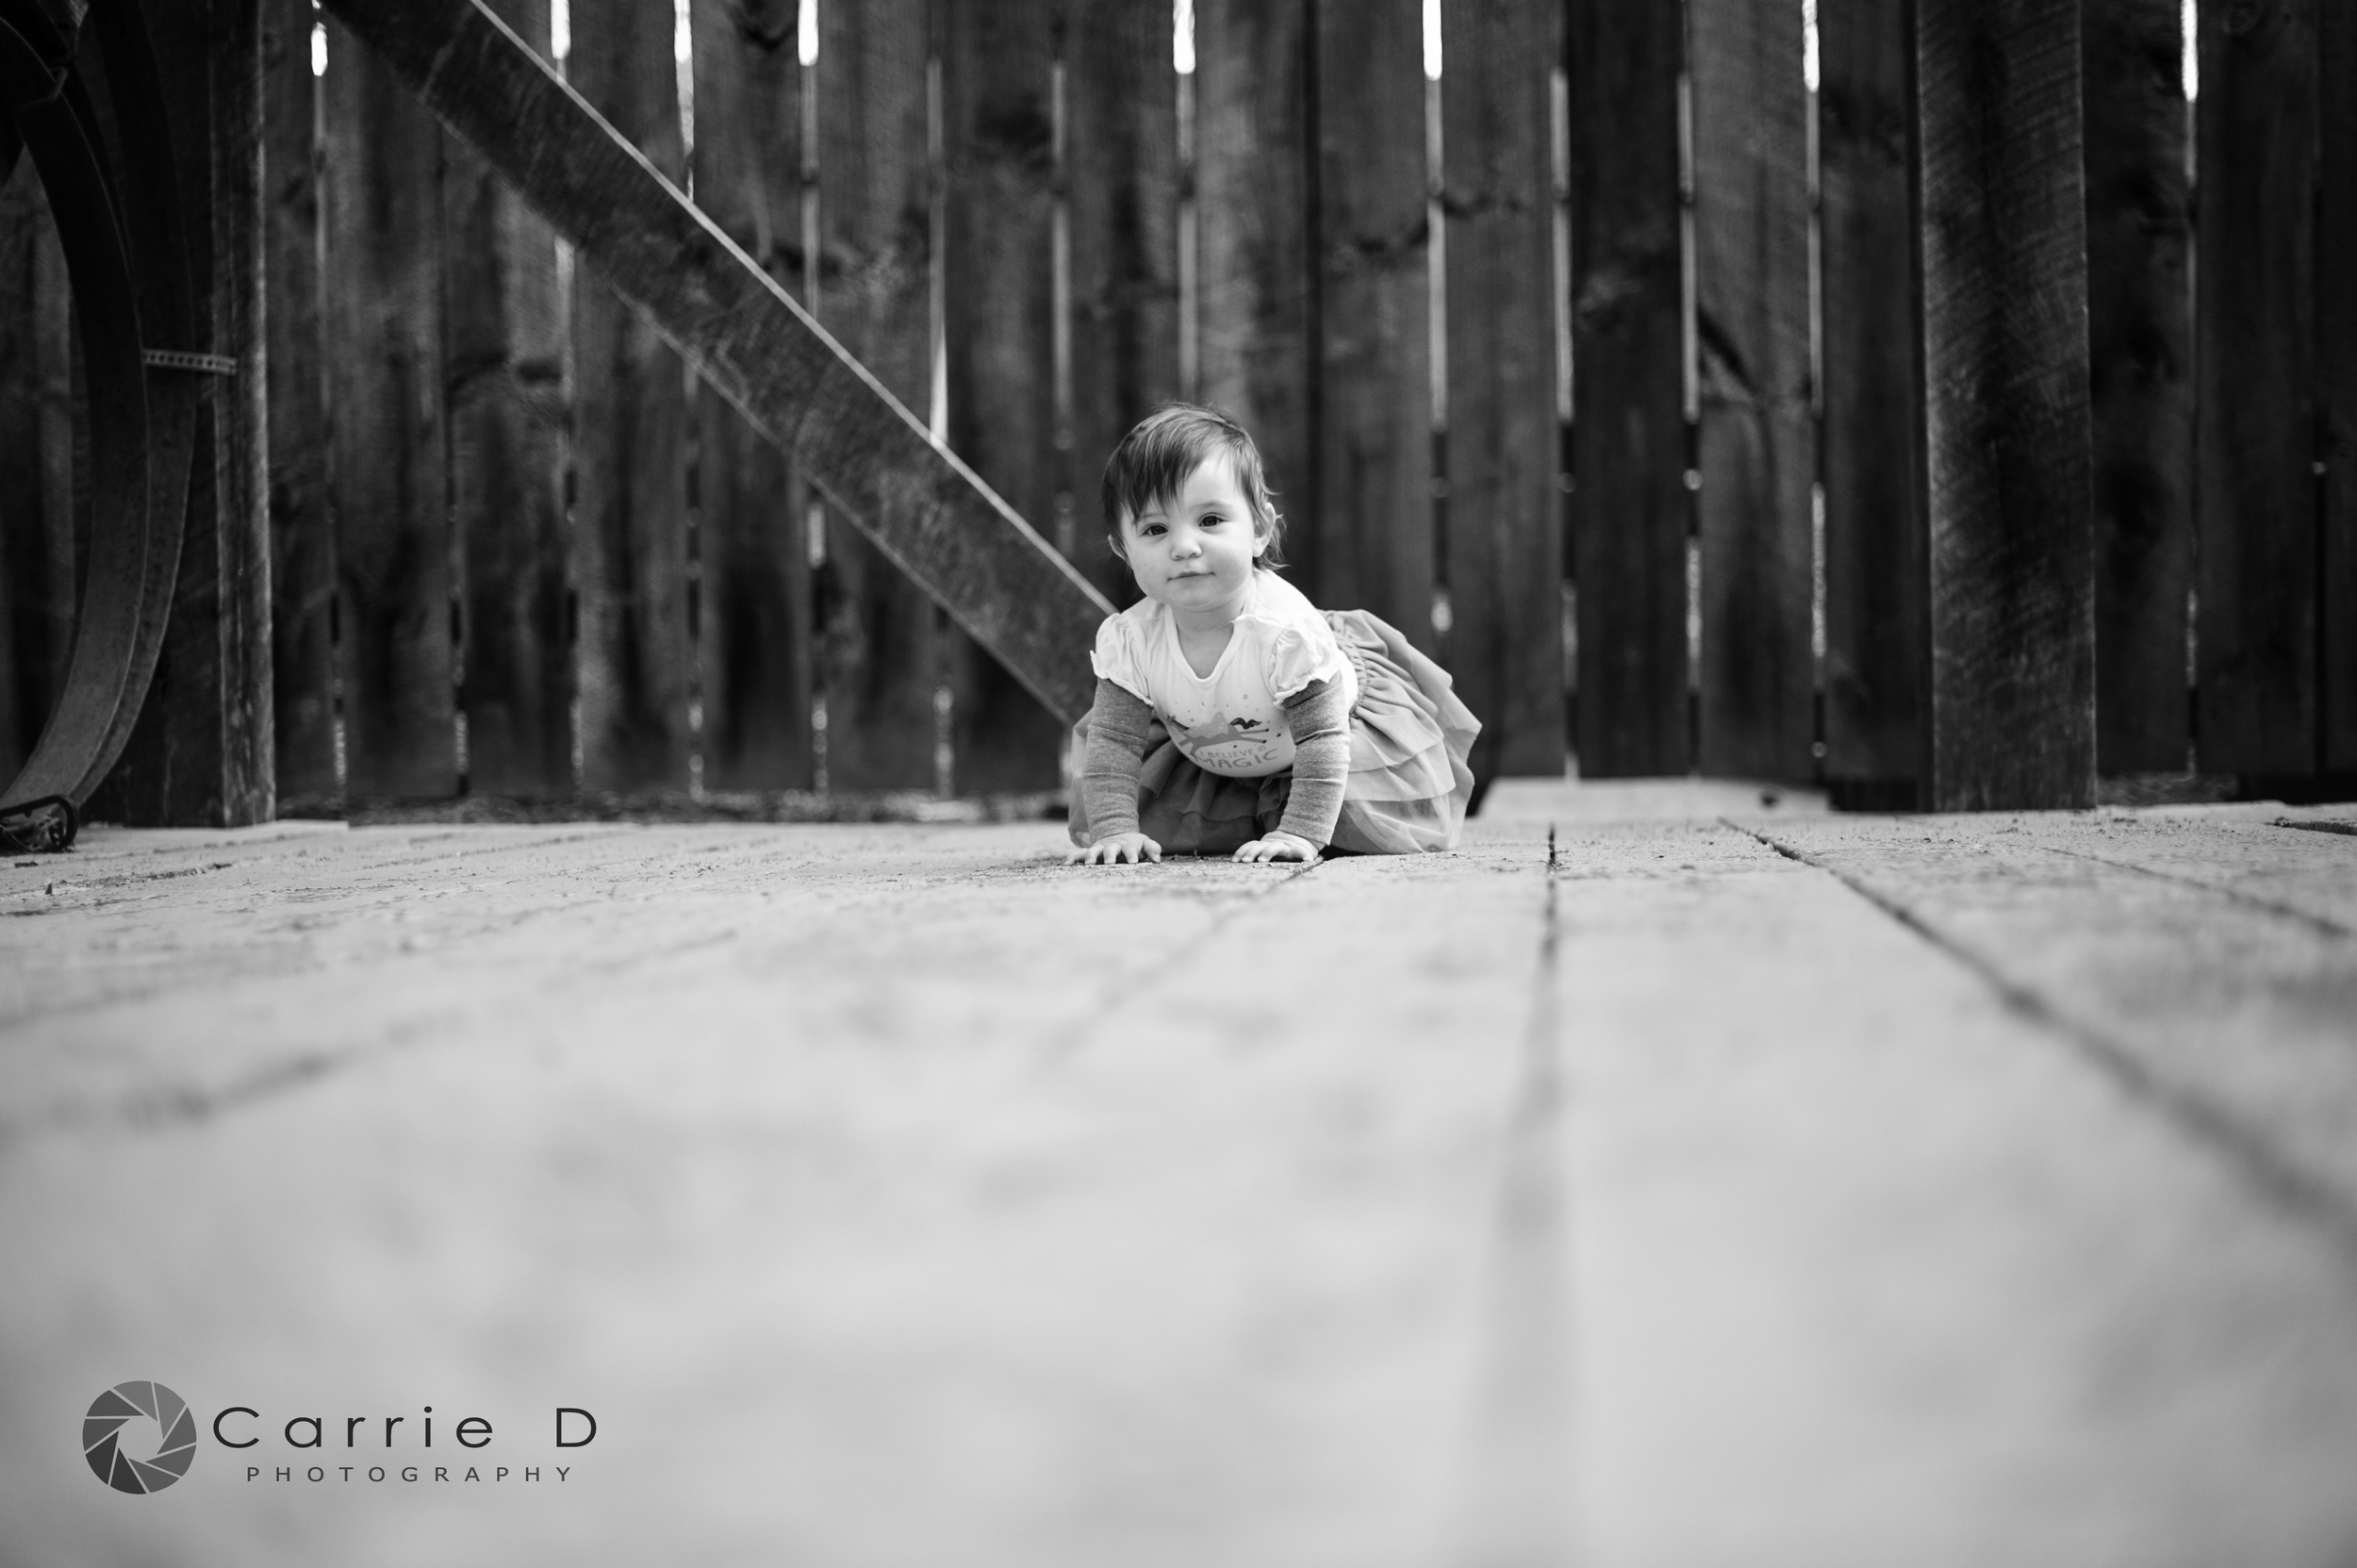 Harford County Photographer – Harford County Portrait Photographer – Harford County Birthday Photographer – Harford County Child Photographer – Harford County Cake Smash Photographer – Harford County Natural Light Photographer – Harford County Lifestyle Photographer – Harford County Natural Light Portrait Photographer - Maryland Photographer – Maryland Portrait Photographer – Maryland Birthday Photographer – Maryland Child Photographer – Maryland Cake Smash Photographer – Maryland Natural Light Photographer – Maryland Lifestyle Photographer – Maryland Natural Light Portrait Photographer - Harper_DSC_6924B